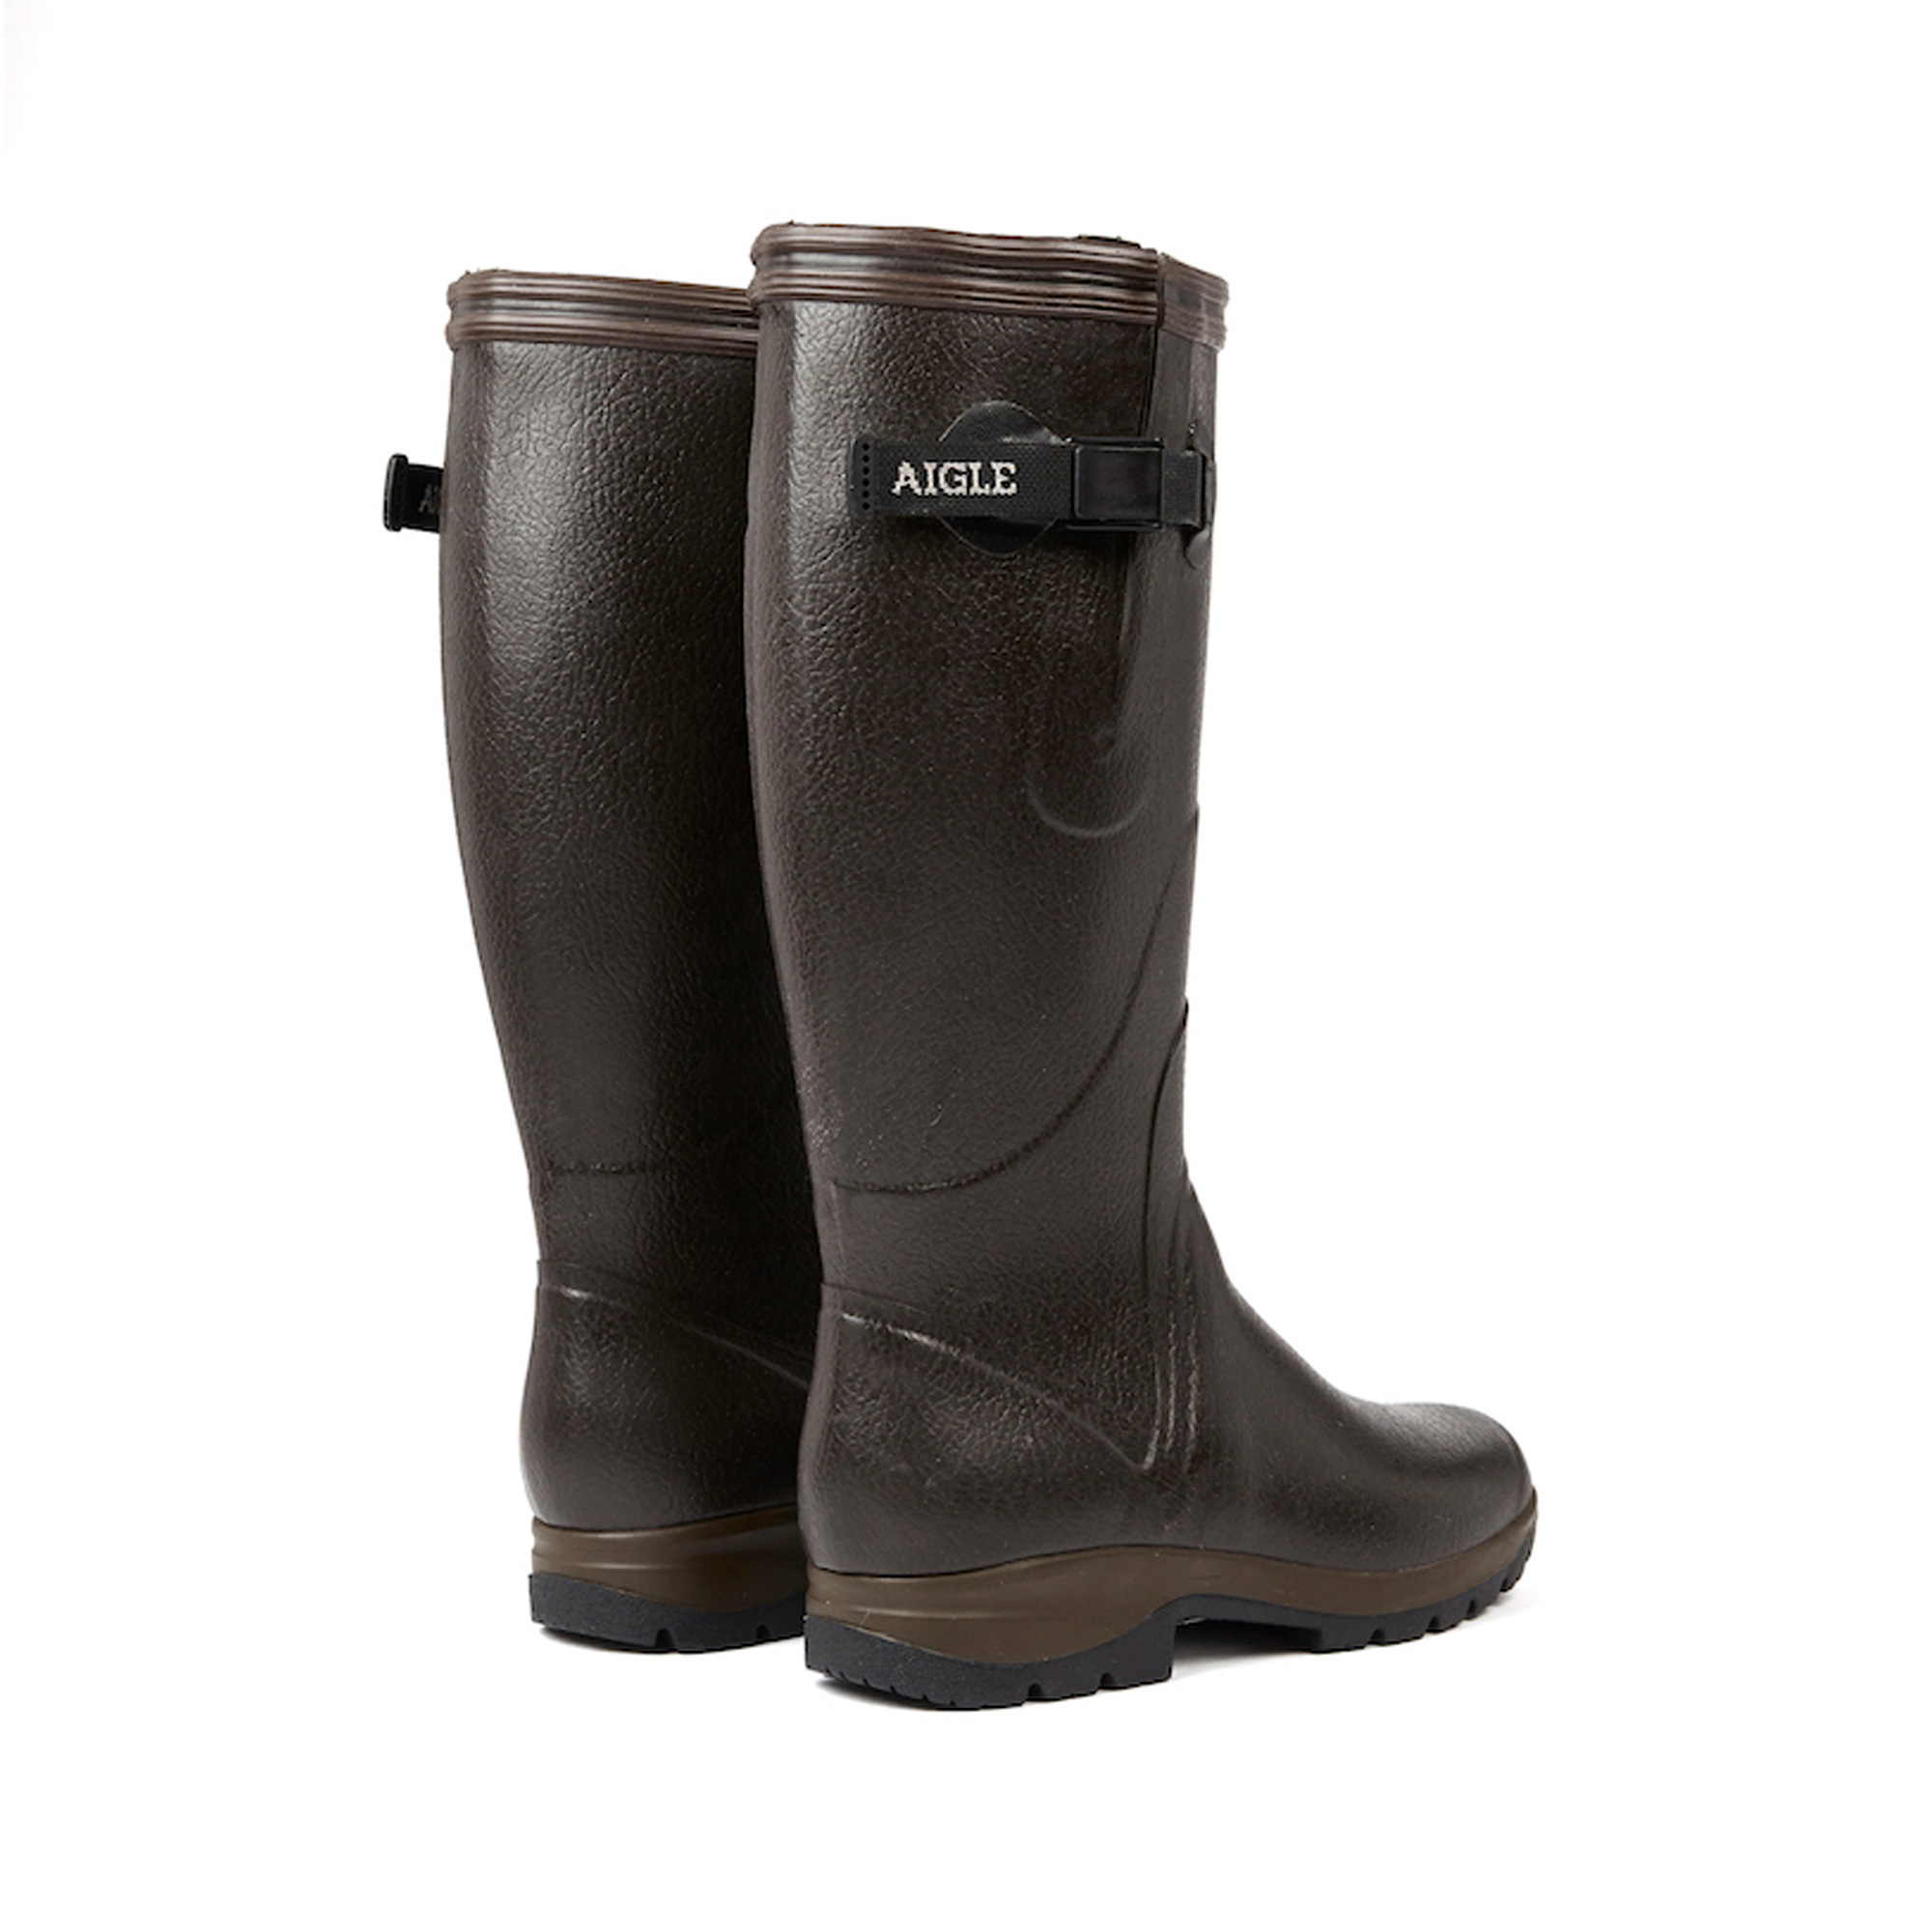 Professionnel VarioBottes Homme Aigle Brun Aiglehomme Pro Terra LUpzMVqSG